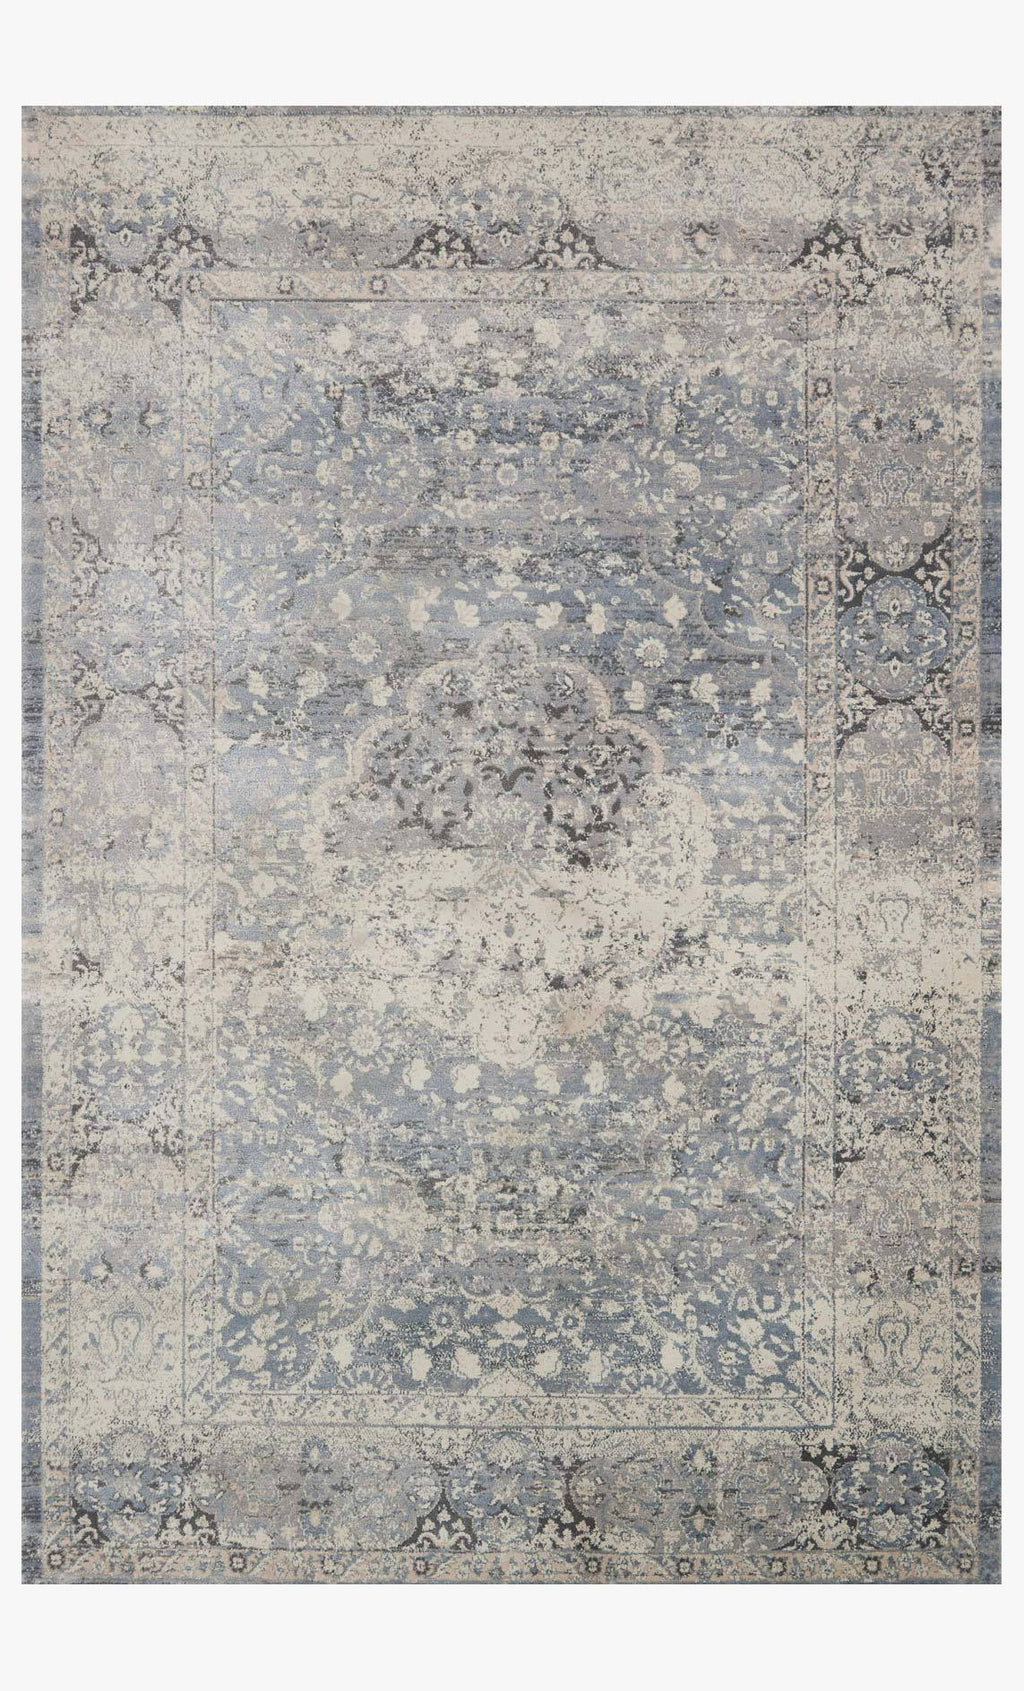 Everly Collection Rug in MIST / MIST